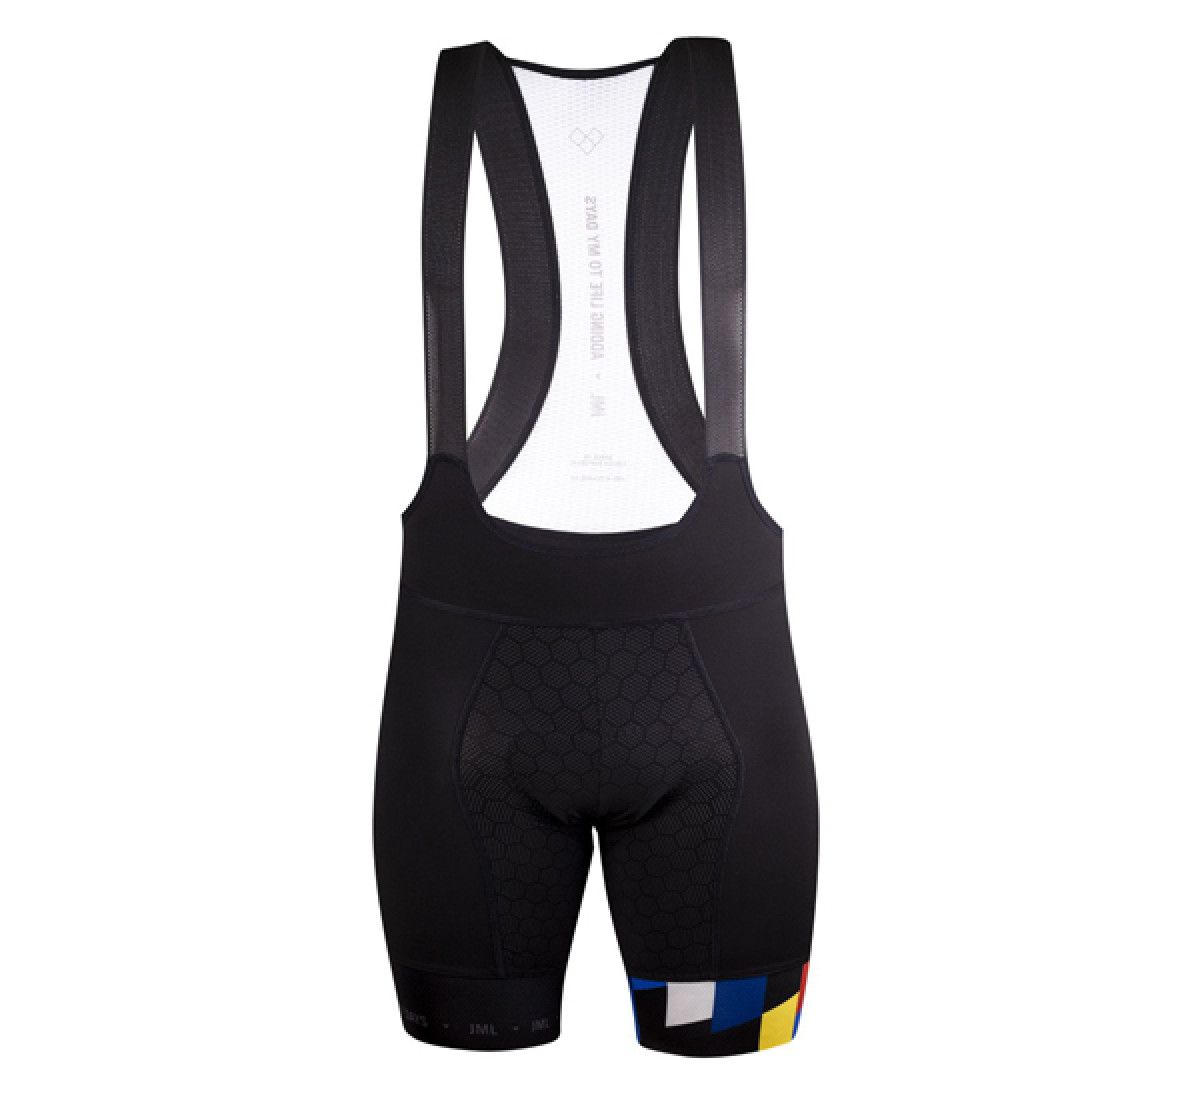 JML Shapes 2.0 Bib Shorts